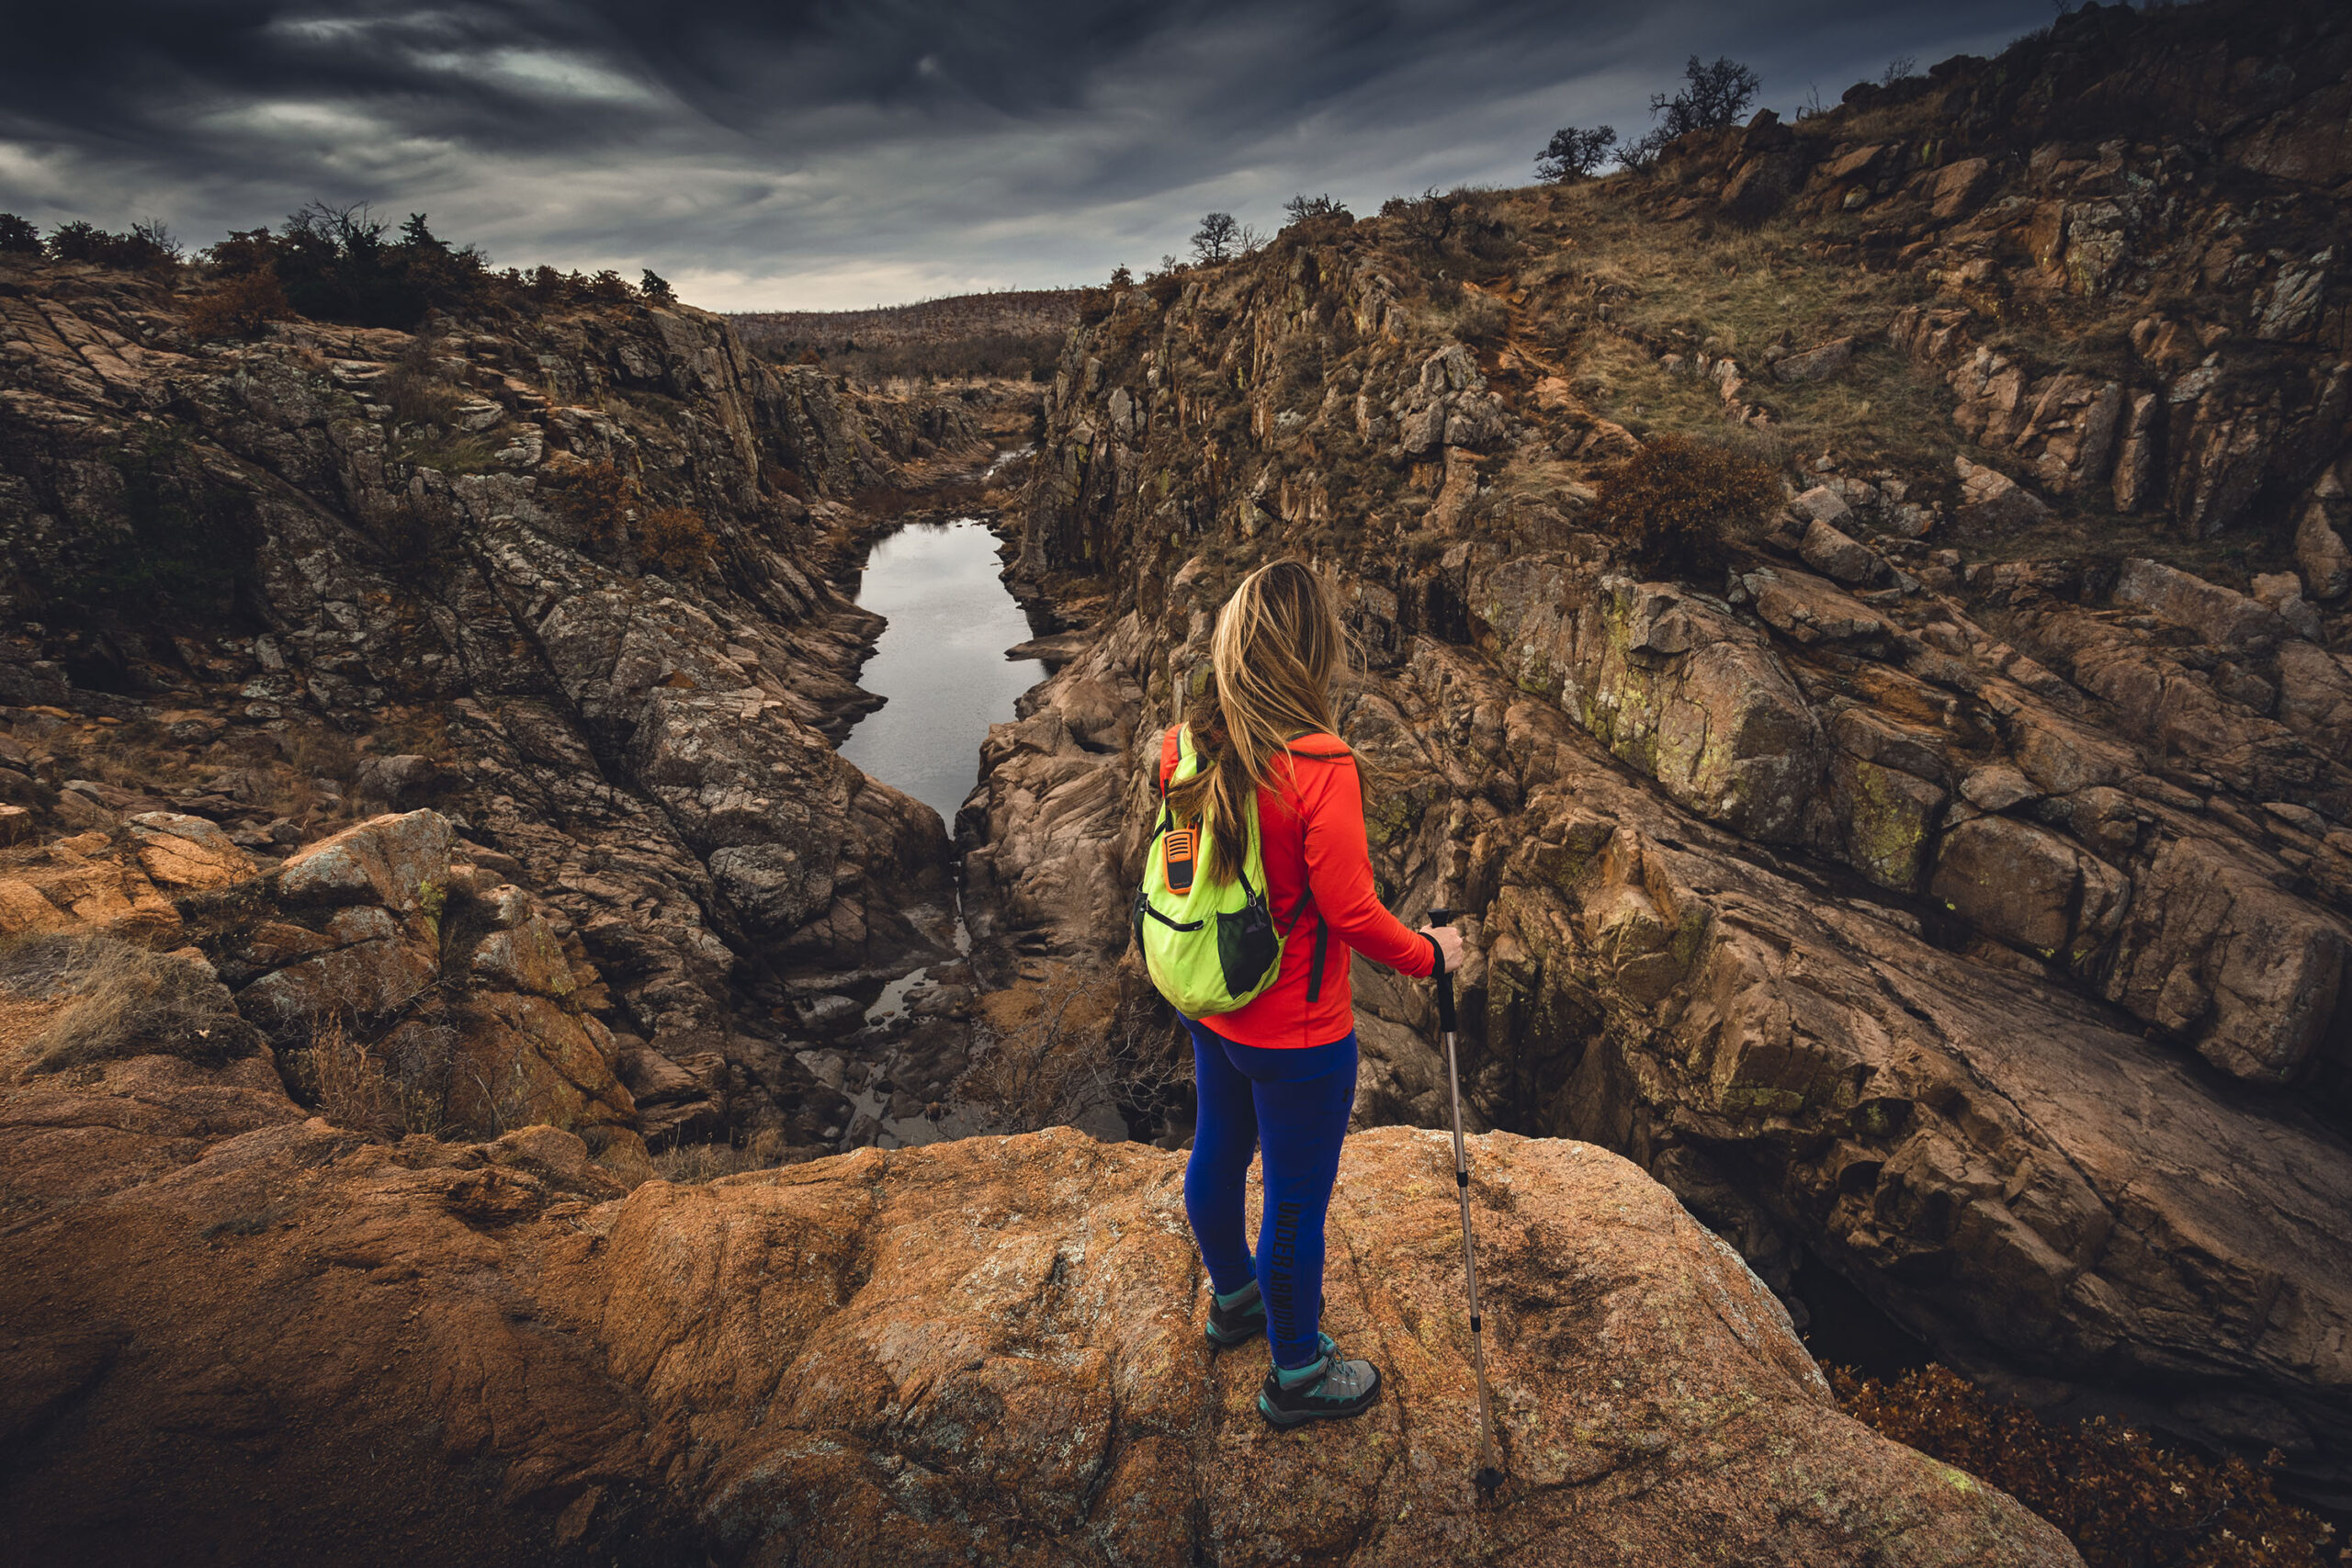 Woman hiker on cliff edge overlooking Forty Foot Hole from Kite Trail Wichita Mountains Wildlife Refuge.